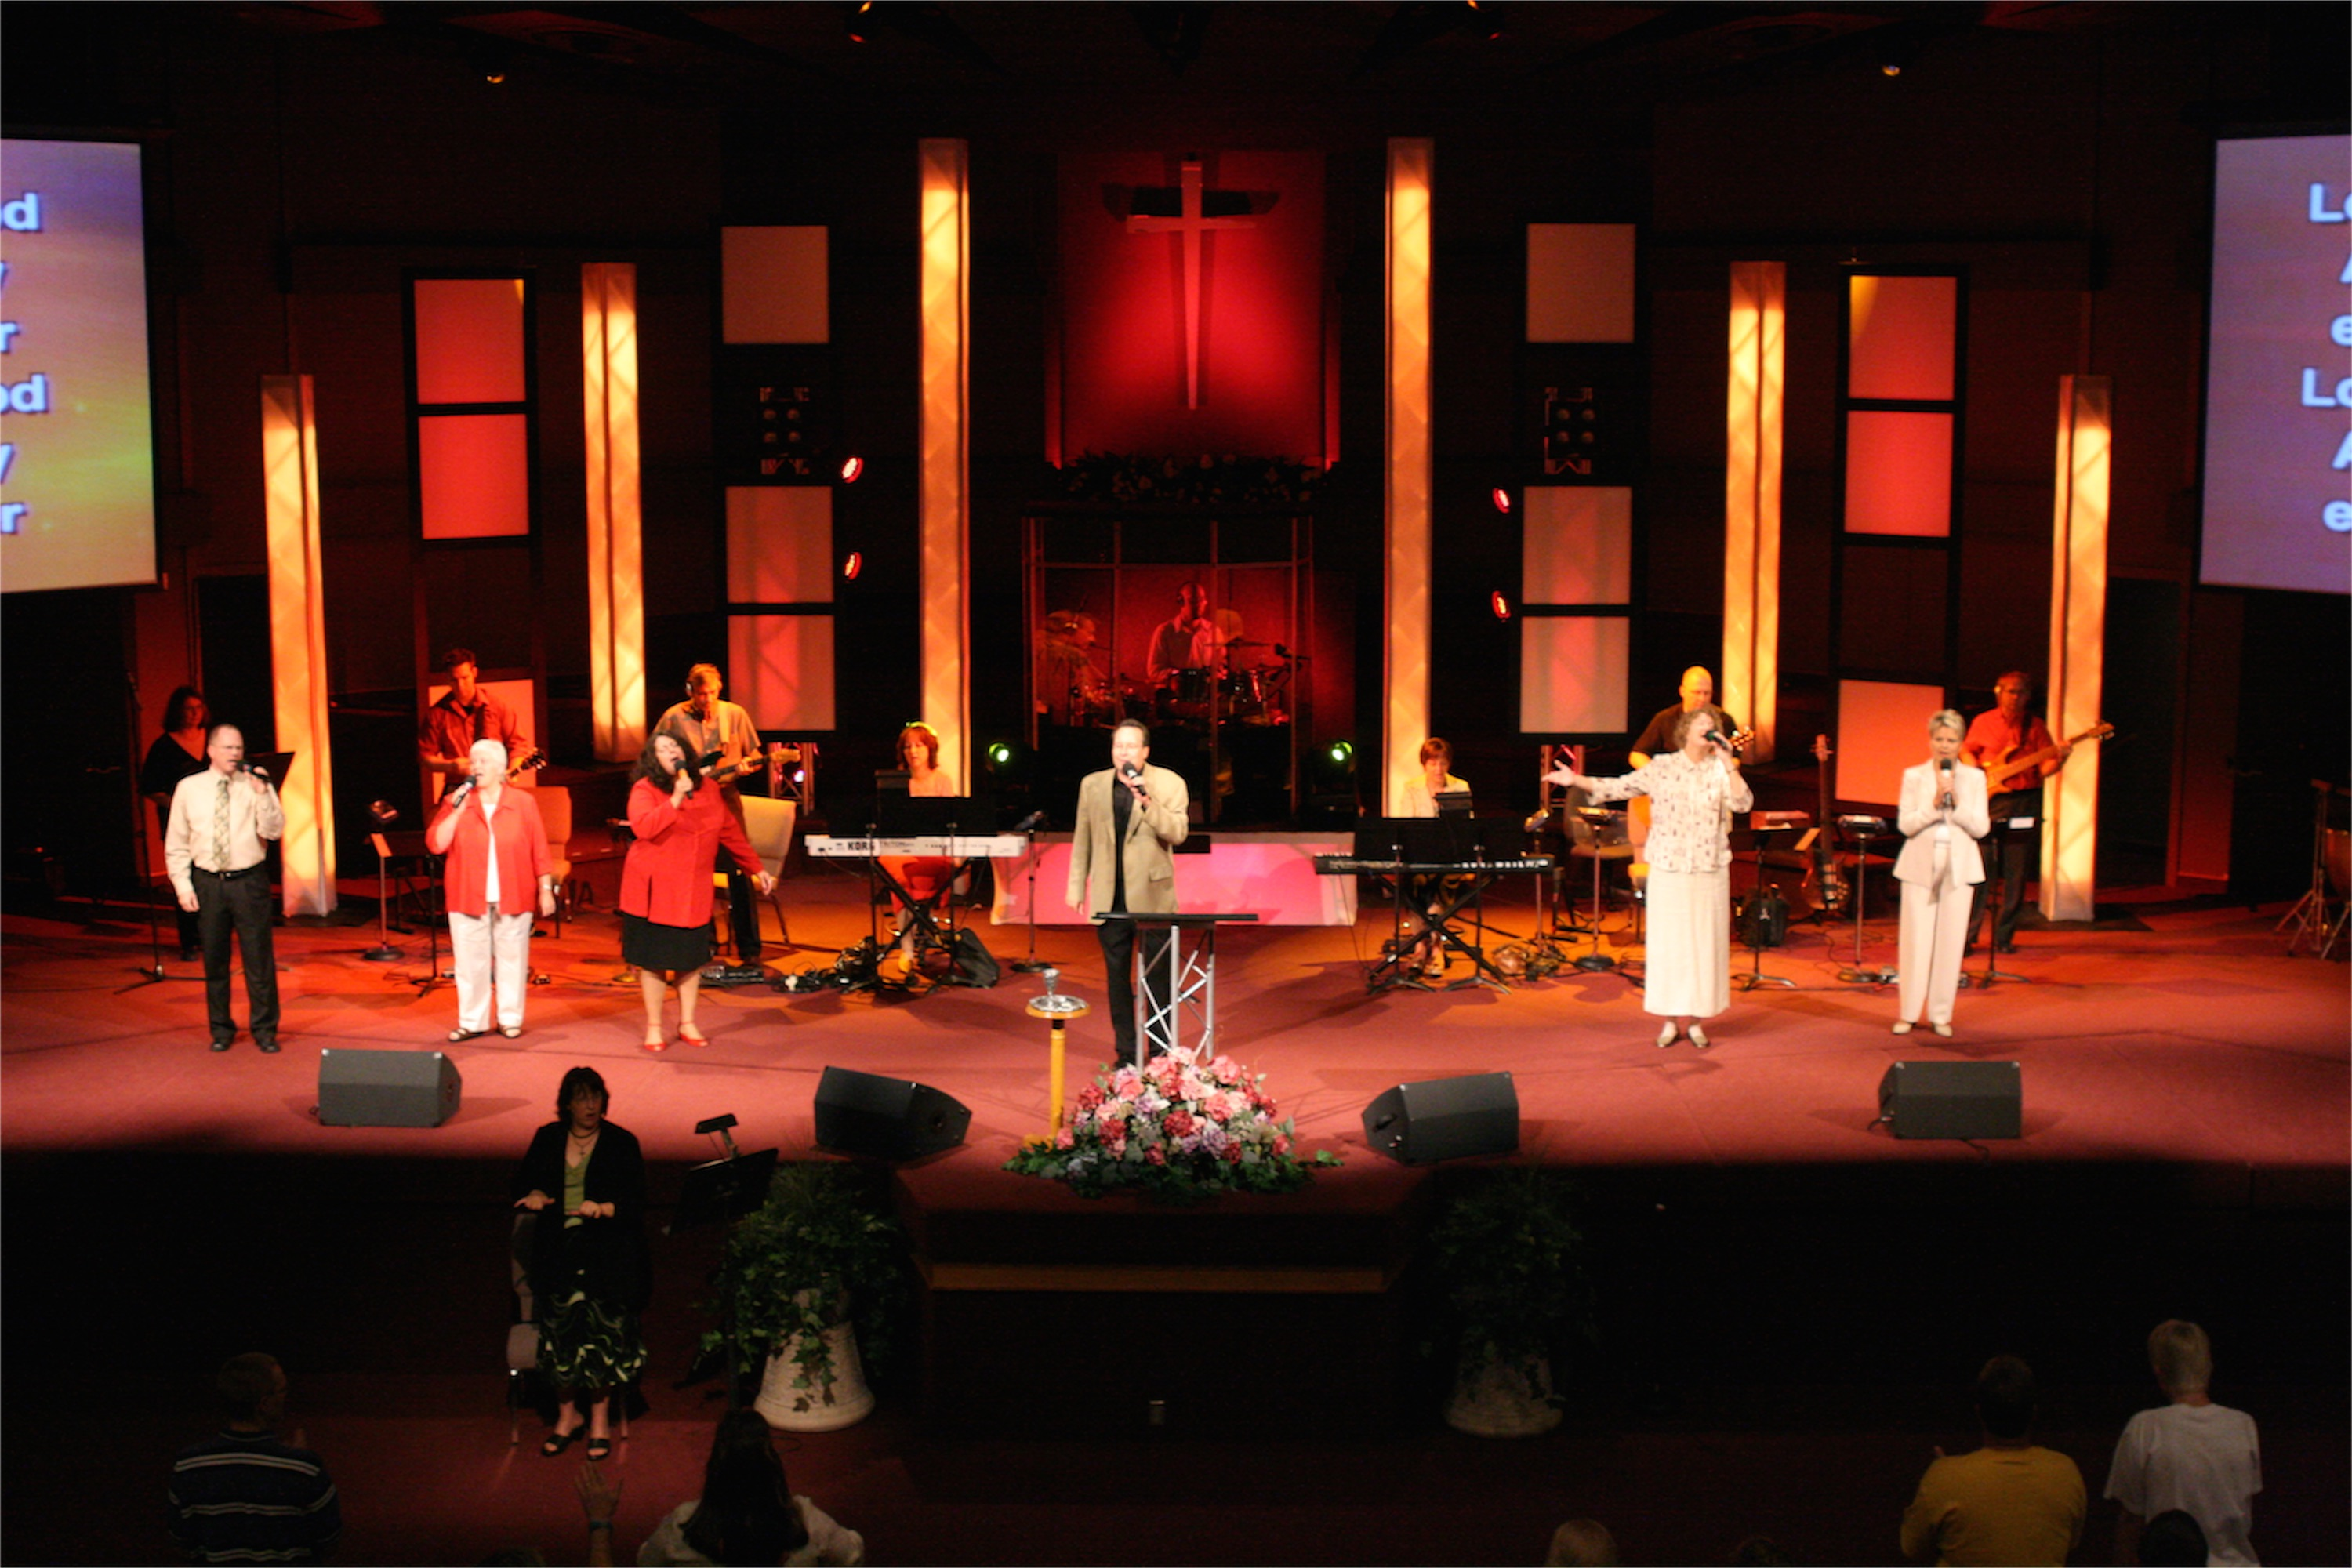 Truss And Coroplast Church Stage Design Ideas Scenic Sets And Stage Design Ideas From Churches Around The Globe